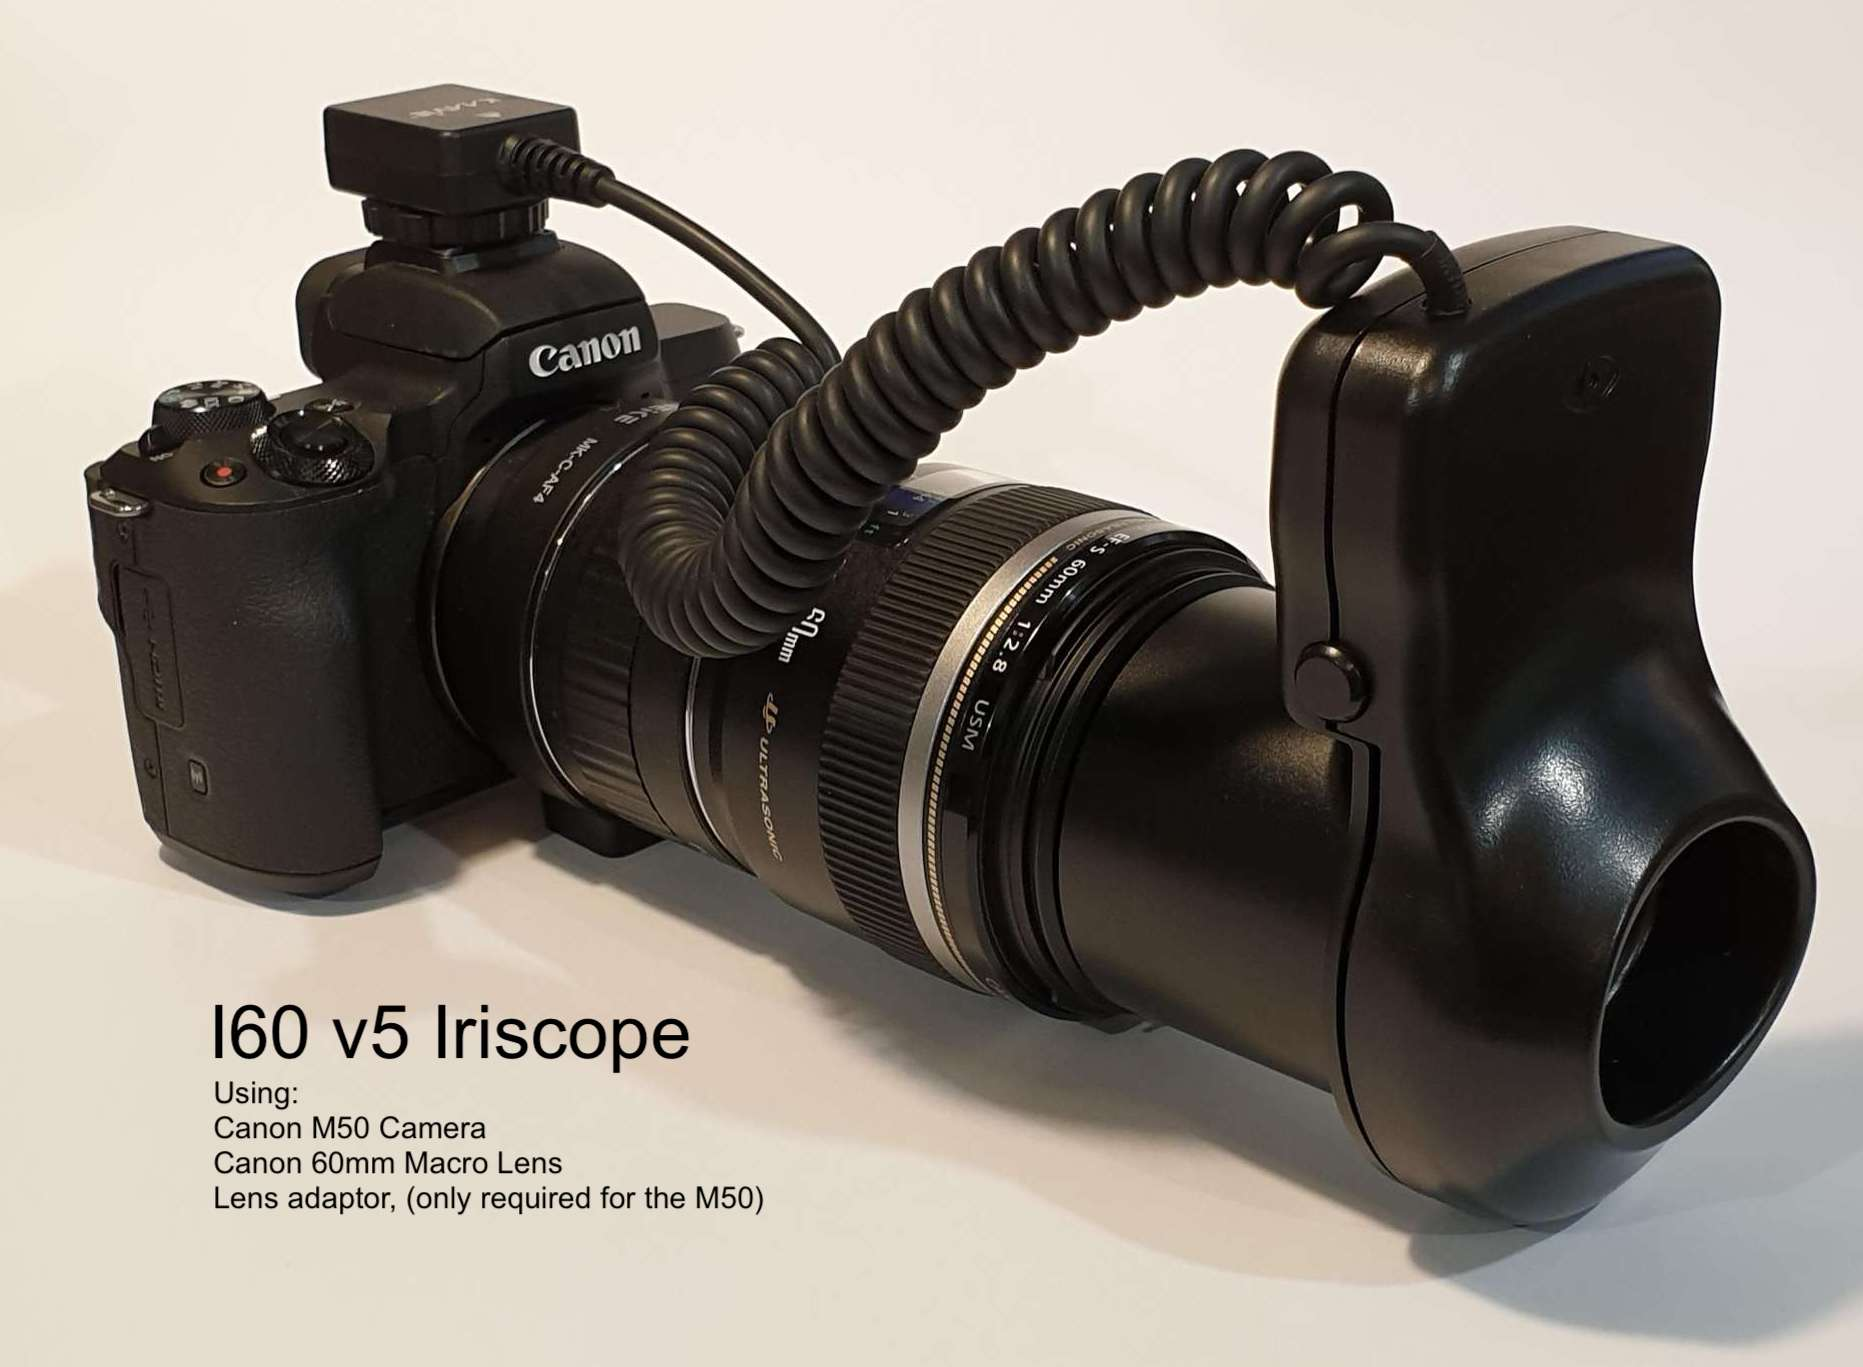 New Iriscope I60 v5 - IRISLAB